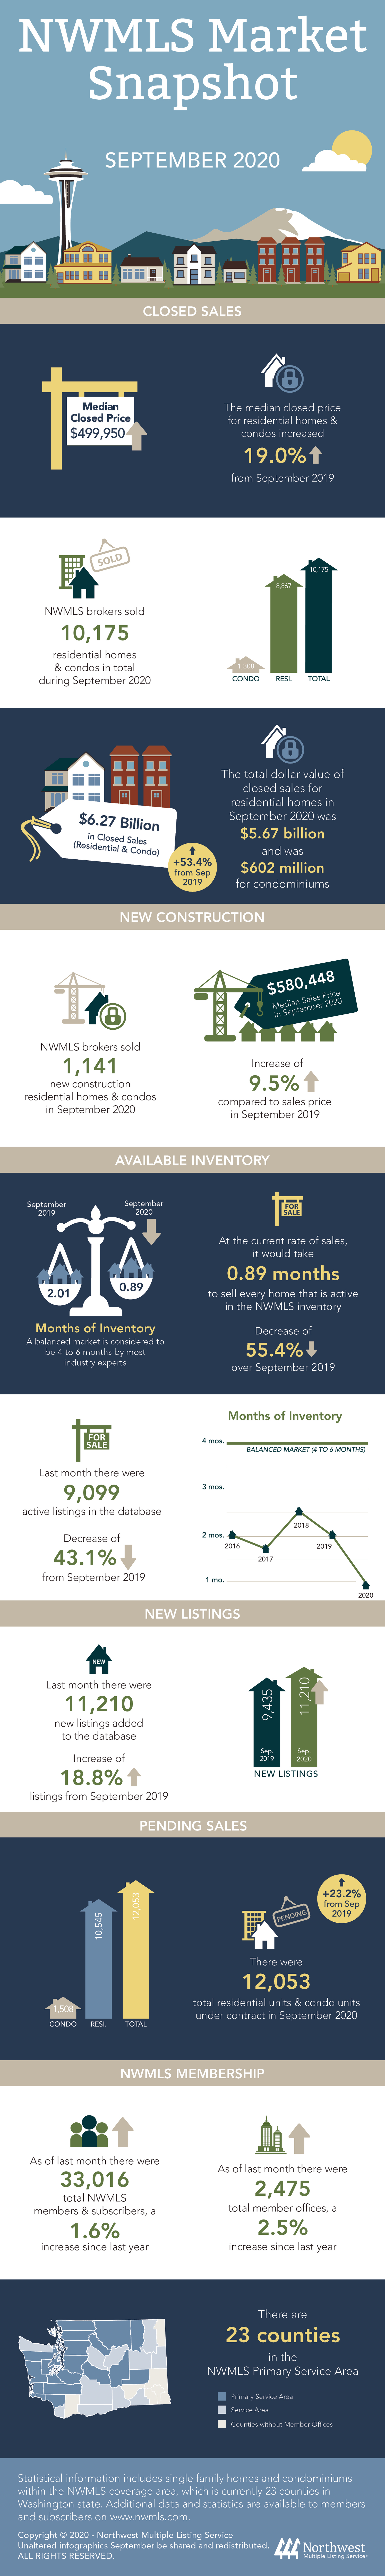 nwmls market update - september 2020